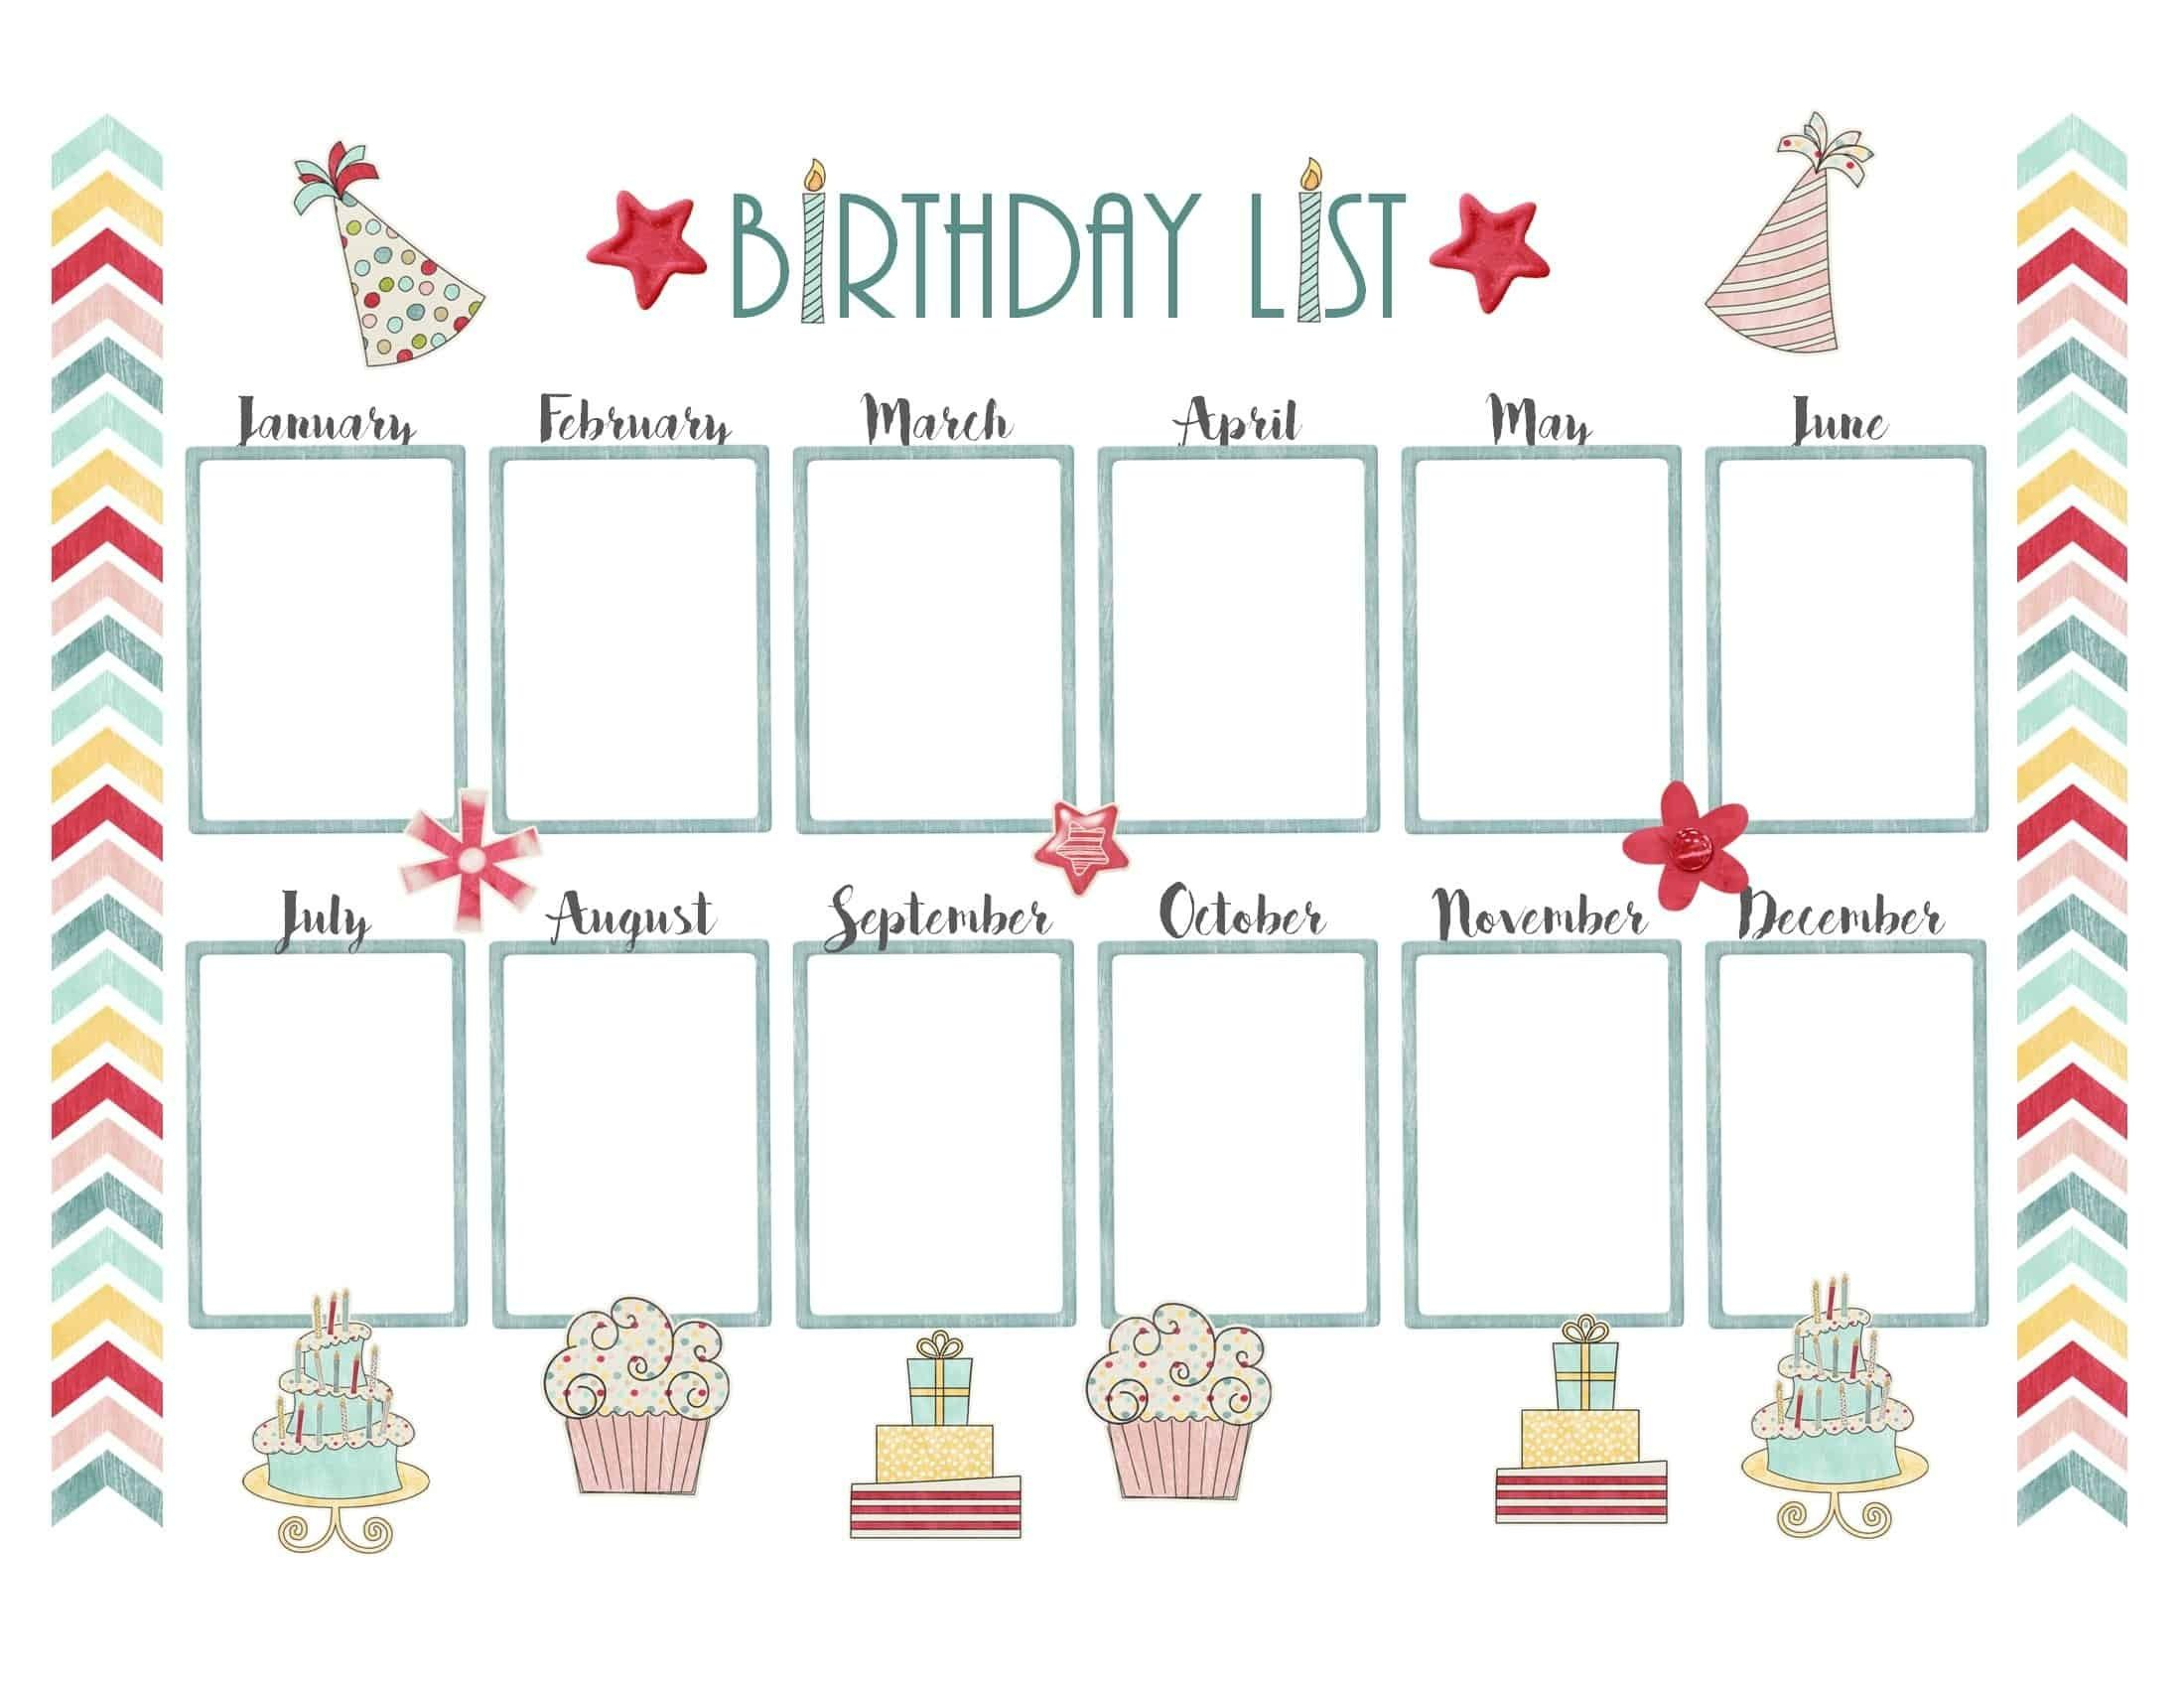 Birthday Calendar Maker Template | Birthday Calender, Weekly pertaining to Blank Birthday Calendar Template